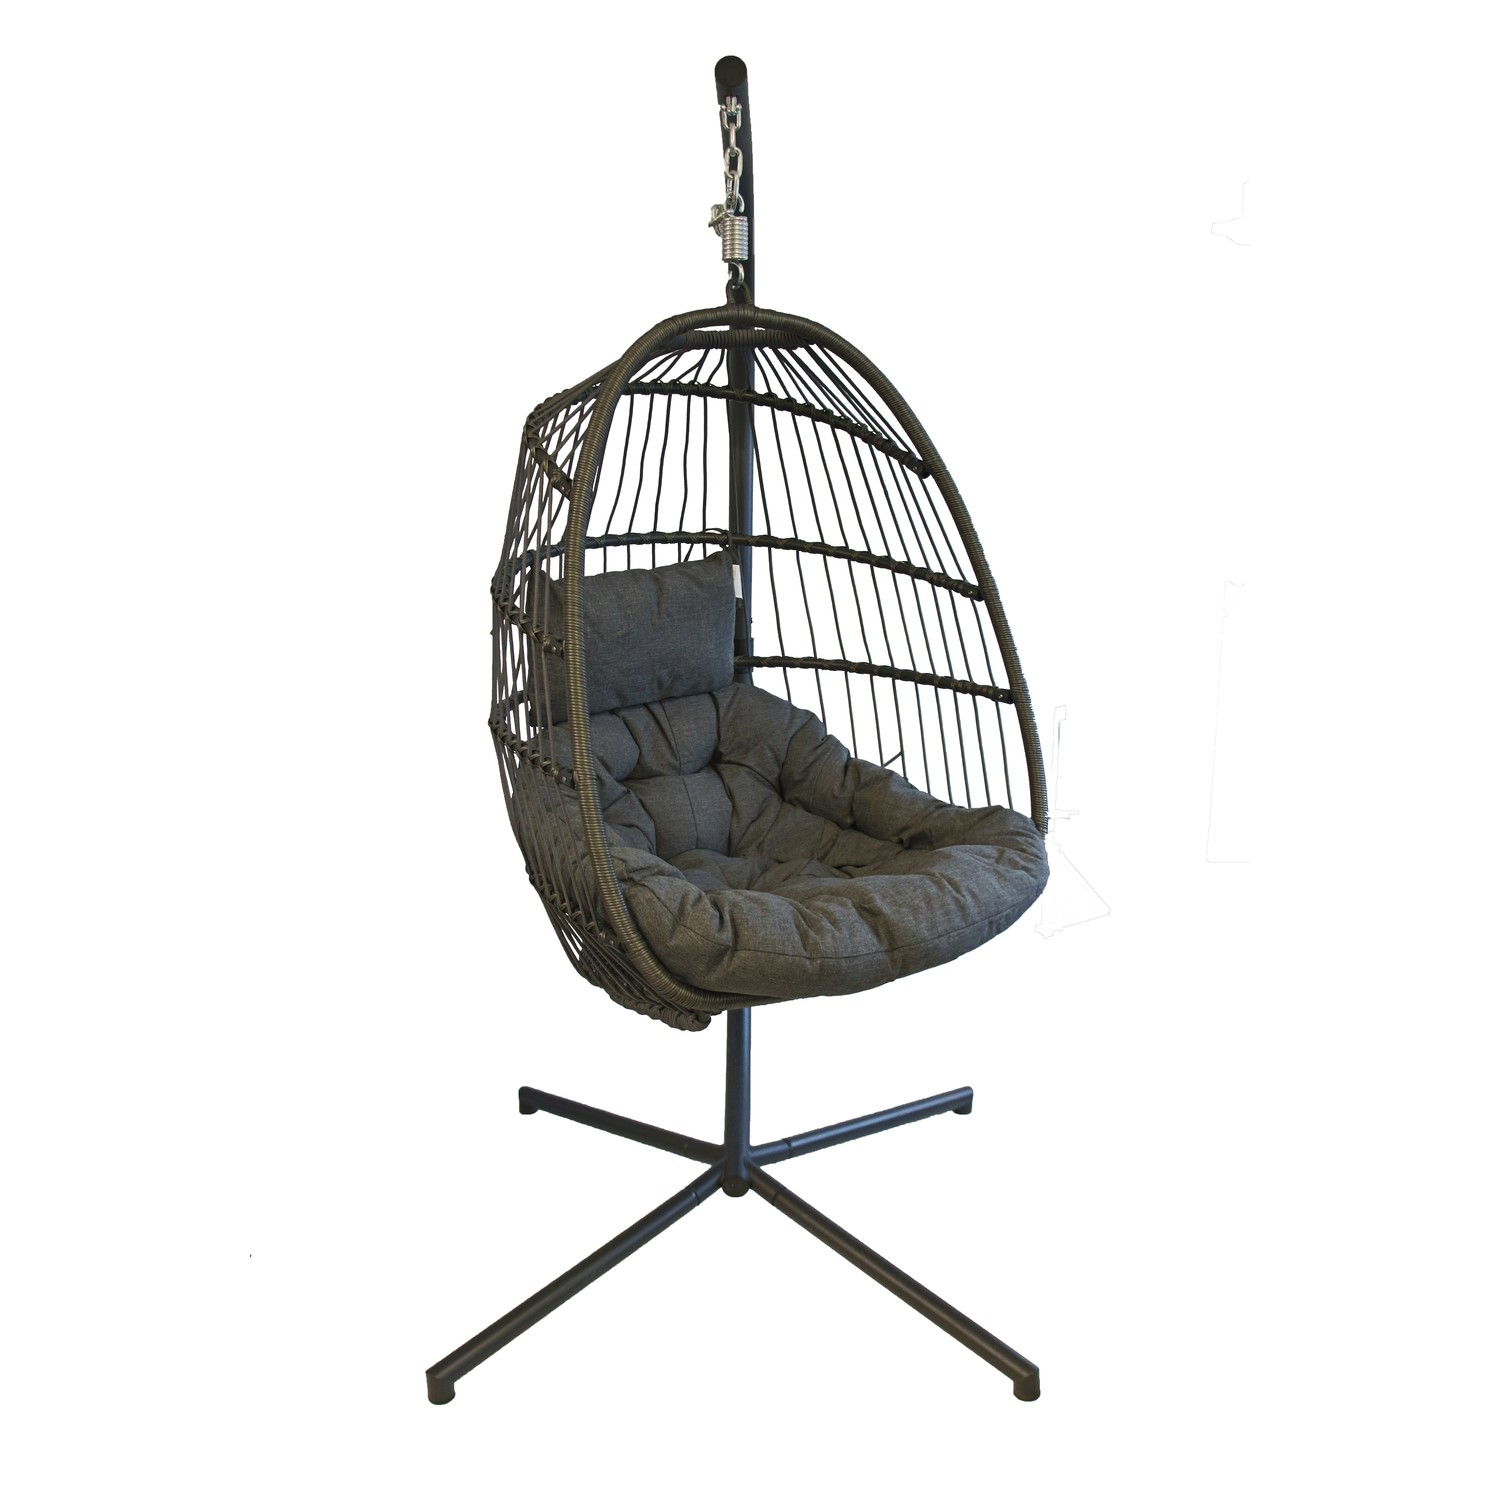 Superb Outdoor Foldable Hanging Egg Chair In Grey Rattan Holly Andrewgaddart Wooden Chair Designs For Living Room Andrewgaddartcom